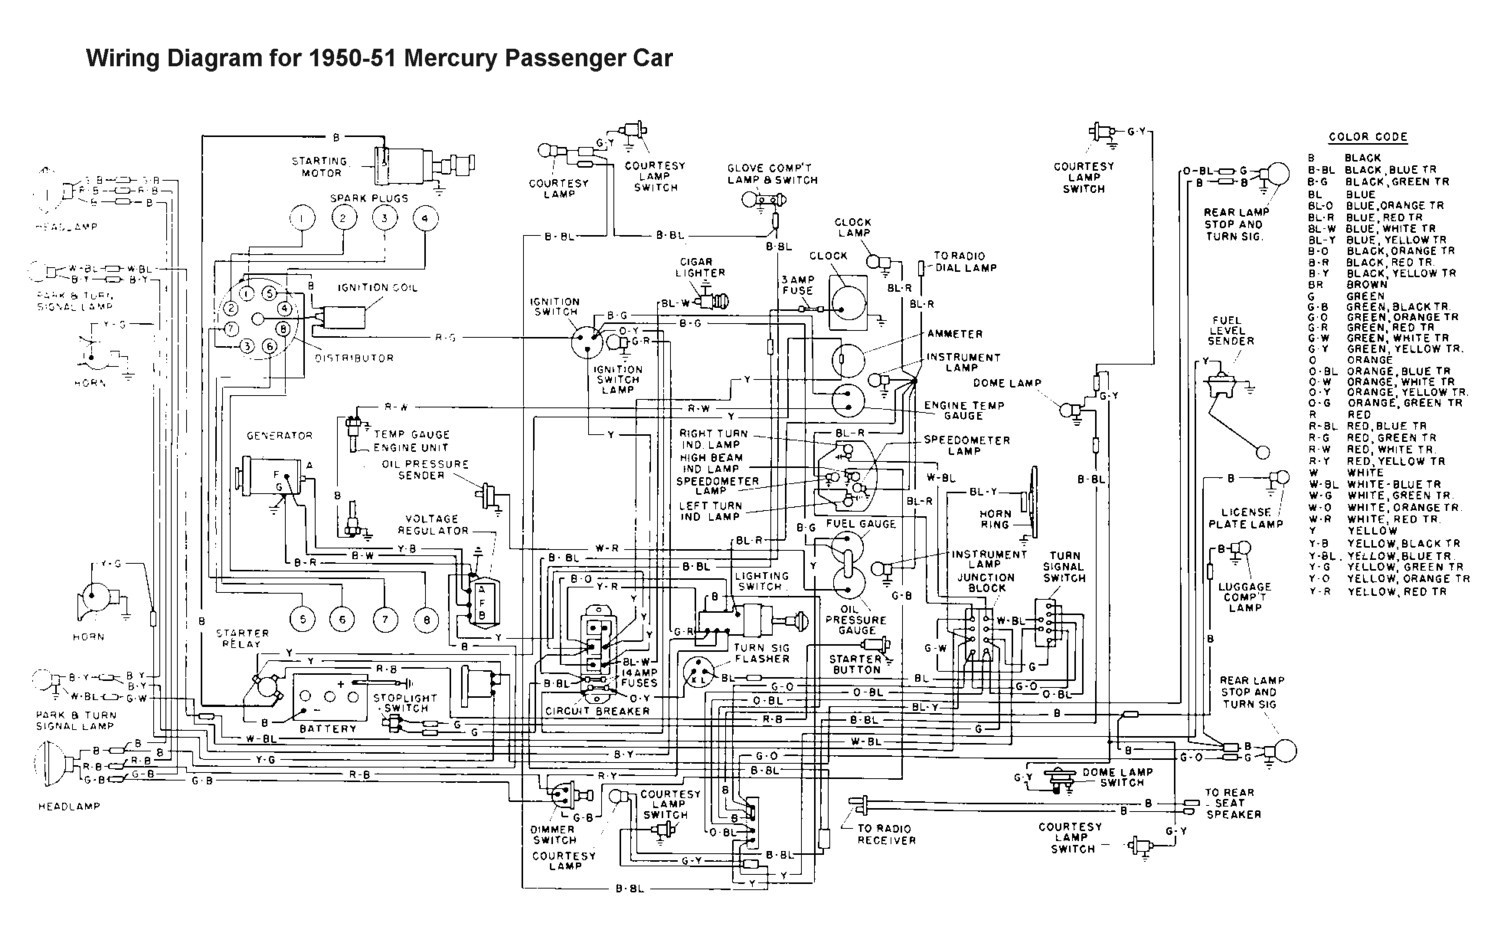 Flathead Electrical Wiring Diagrams Car Ignition Diagram For 1950 51 Mercury